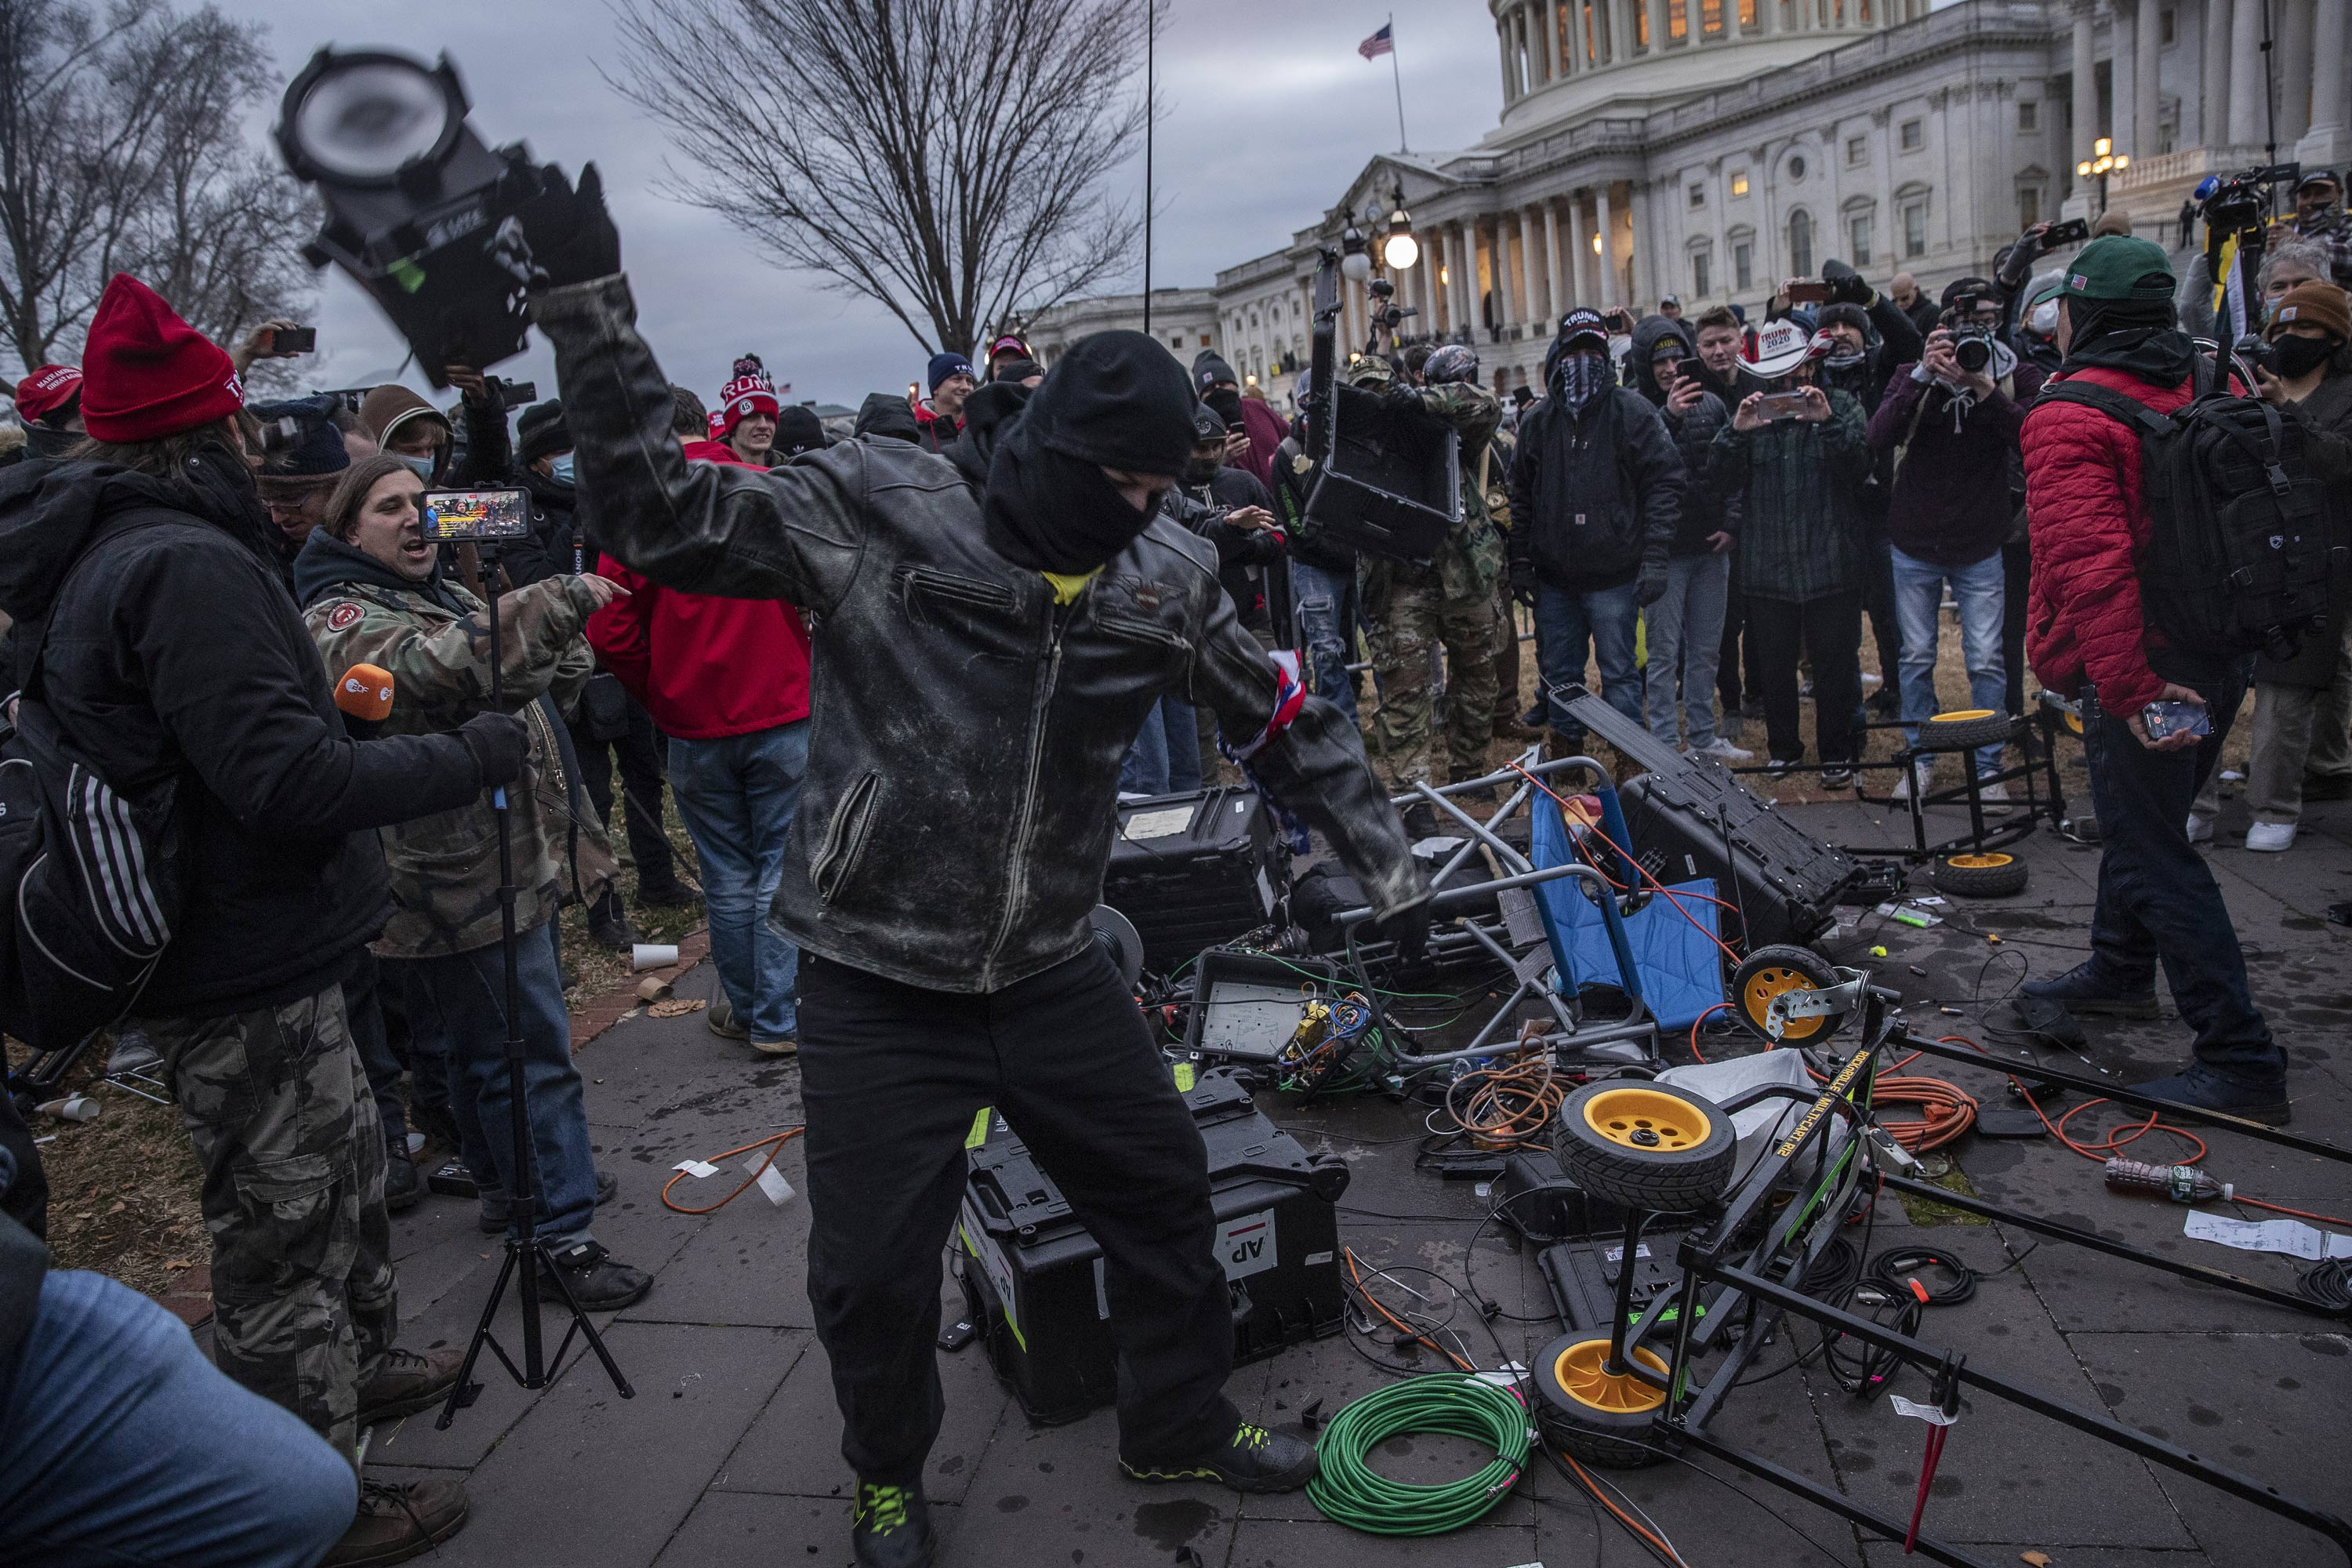 Capitol rioters smashing media equipment prompt several new criminal cases